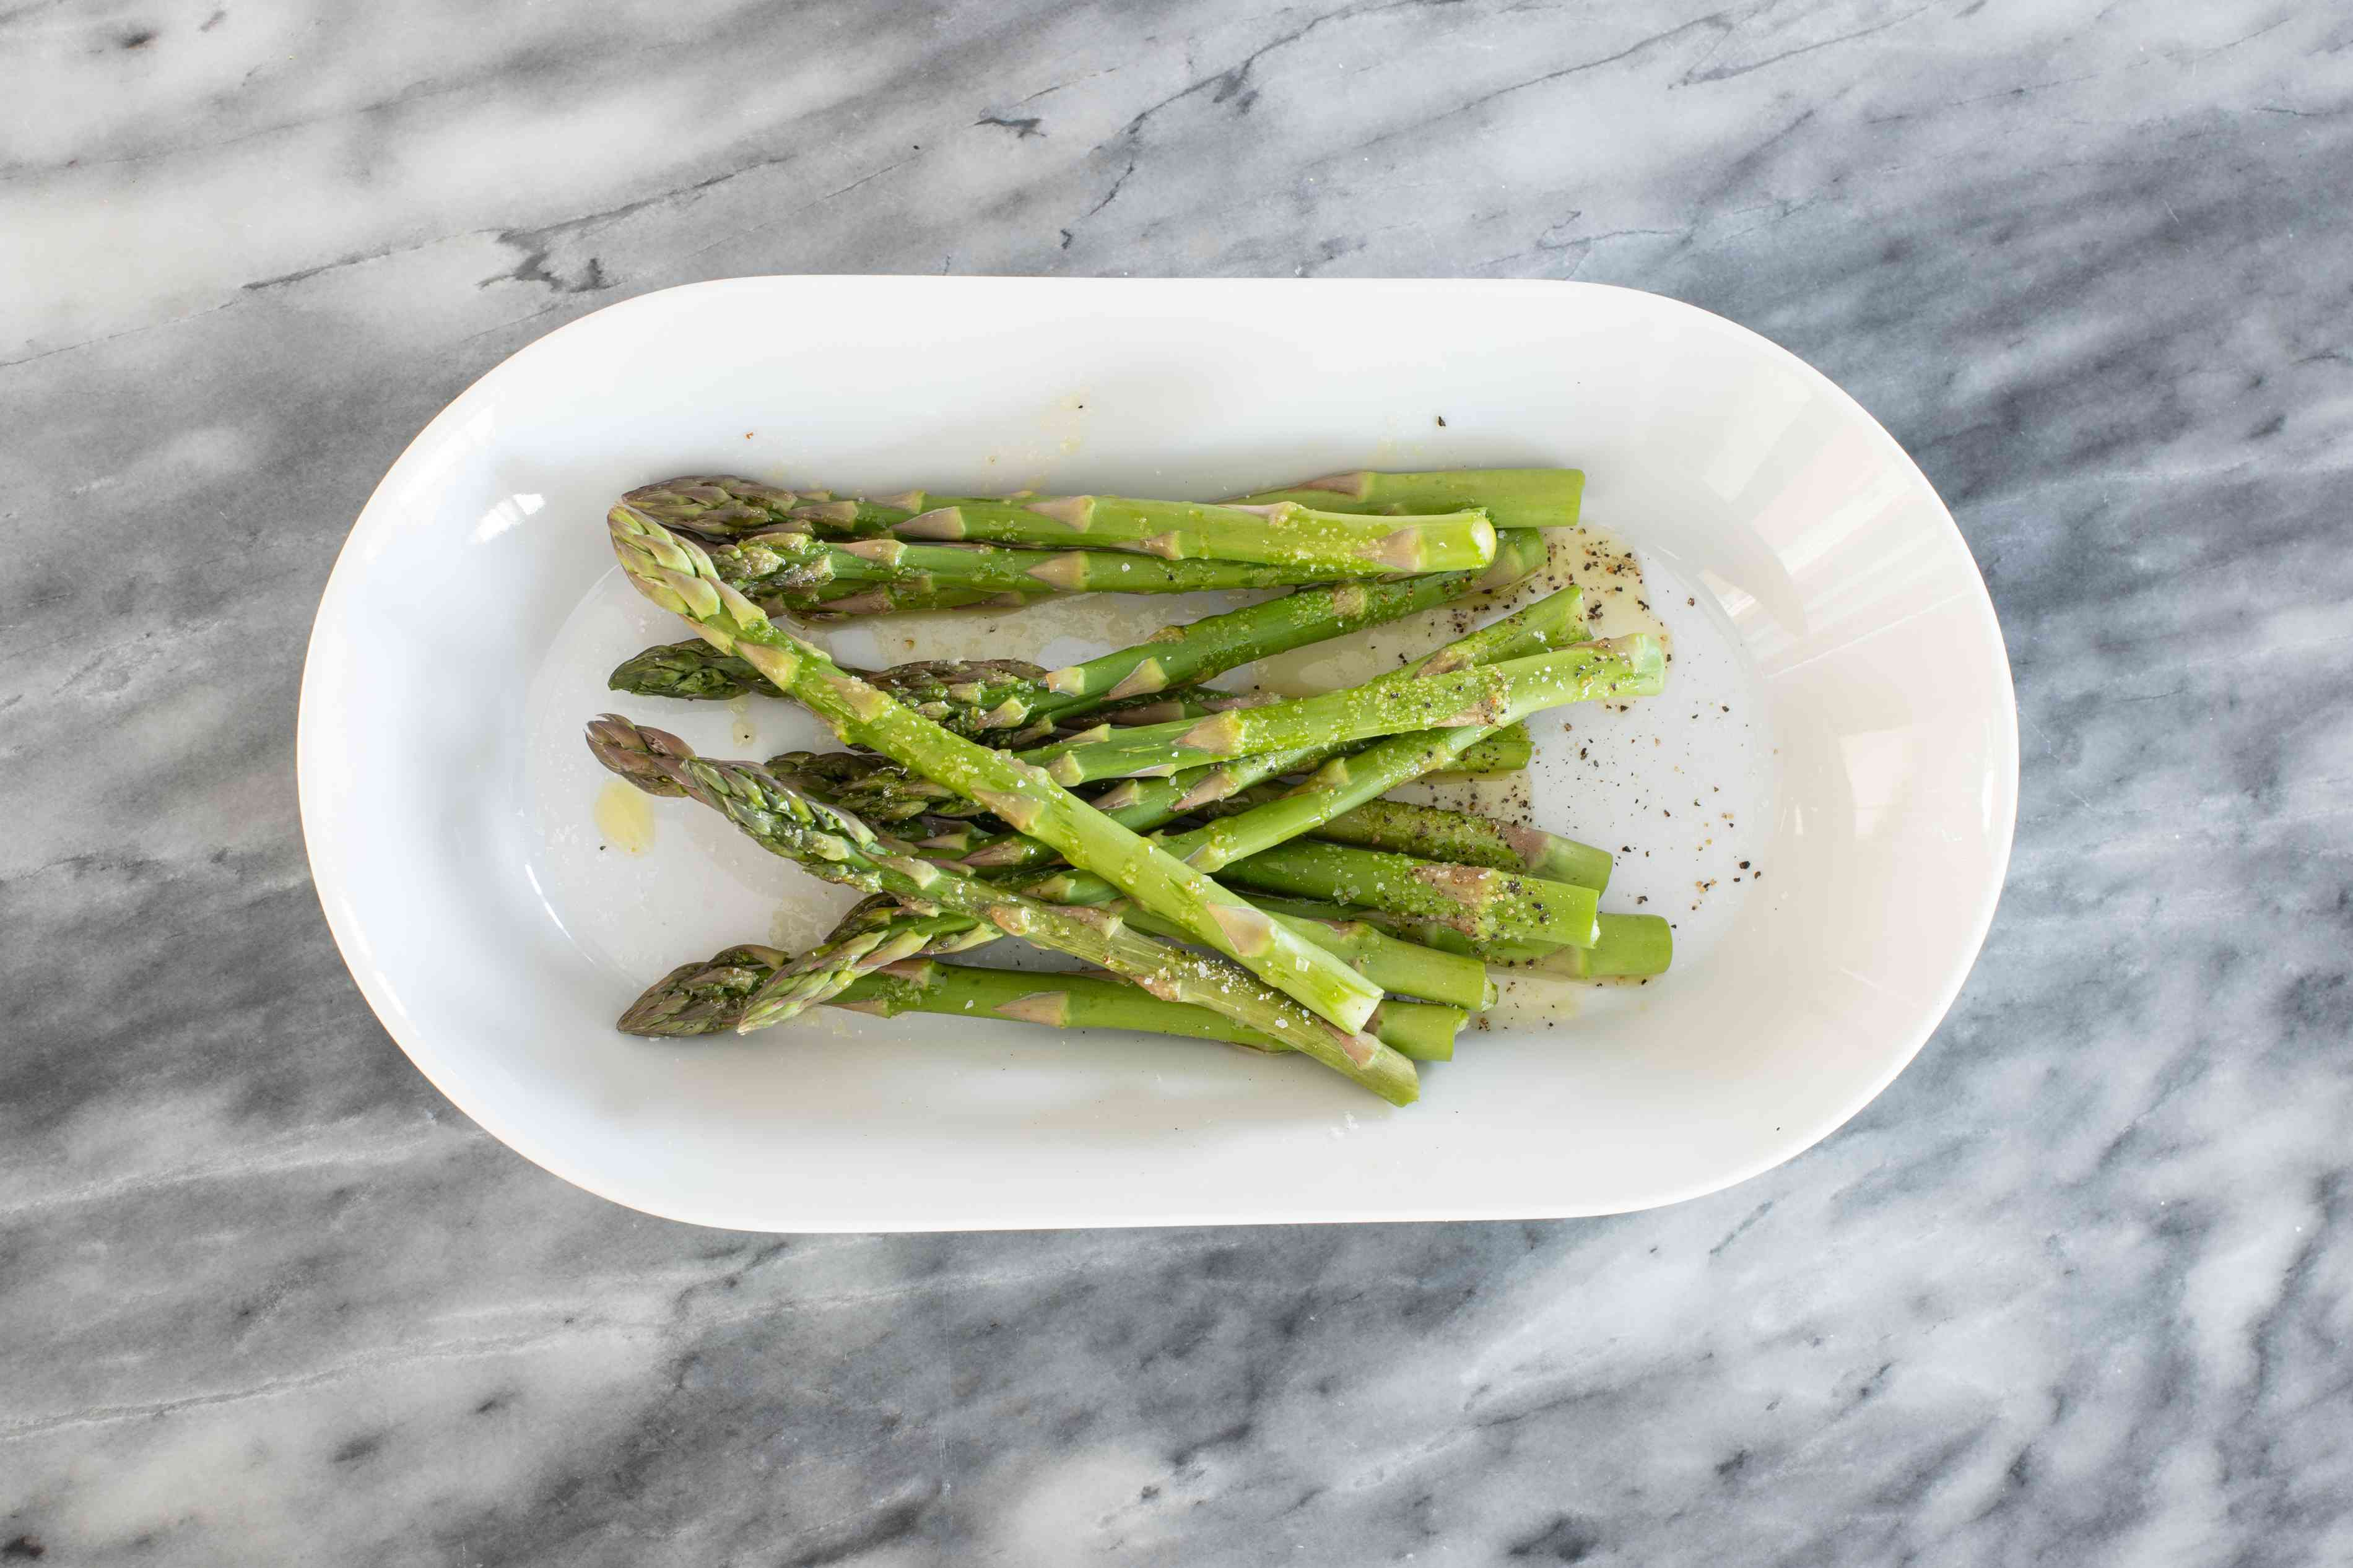 toss the asparagus with oil, salt, and pepper